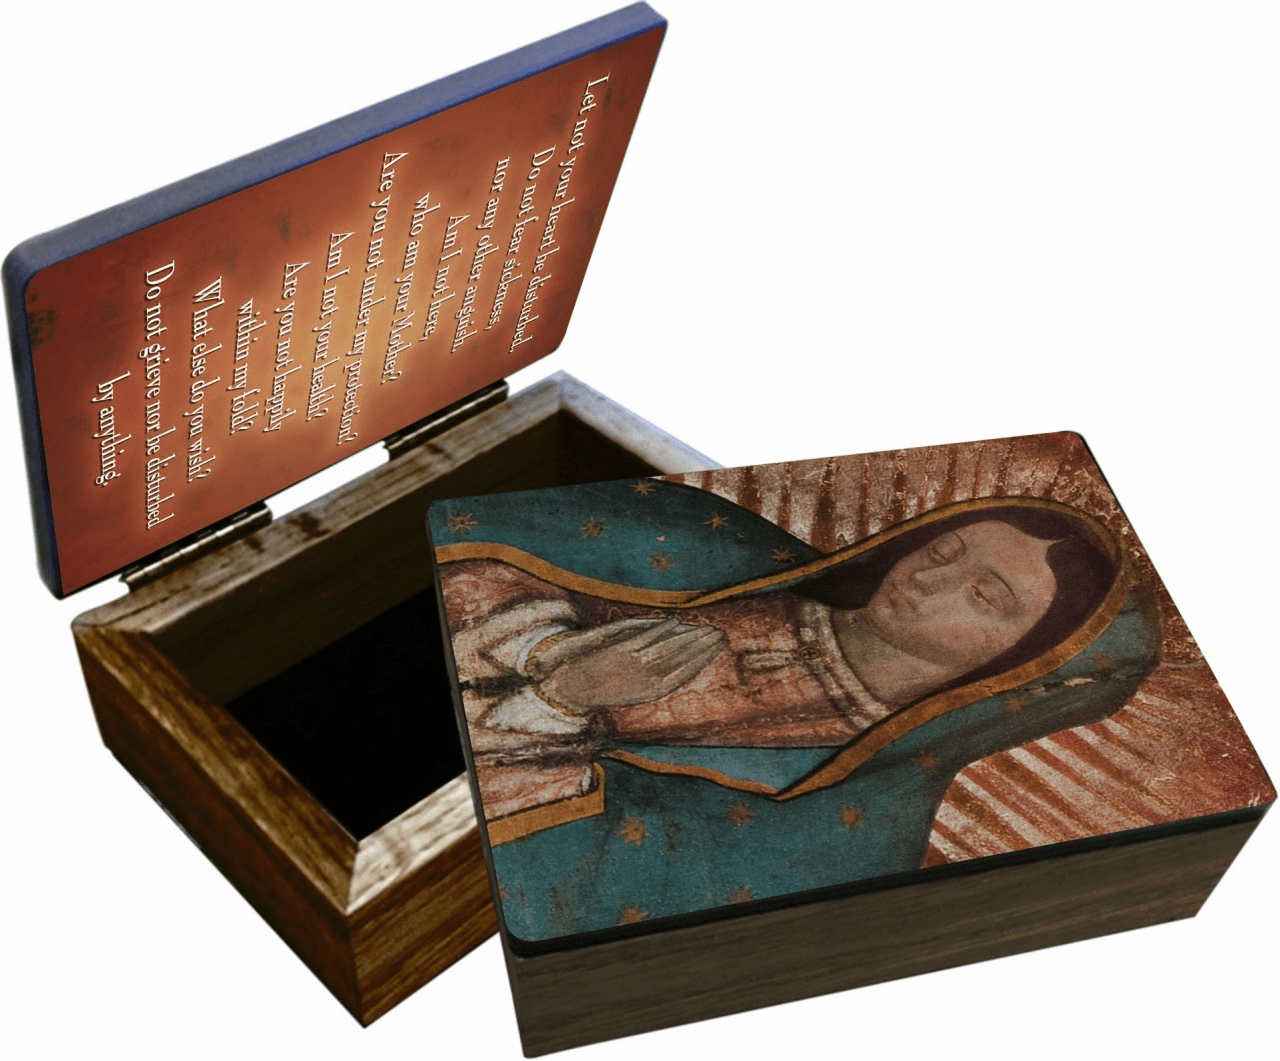 Our Lady of Guadalupe Gifts